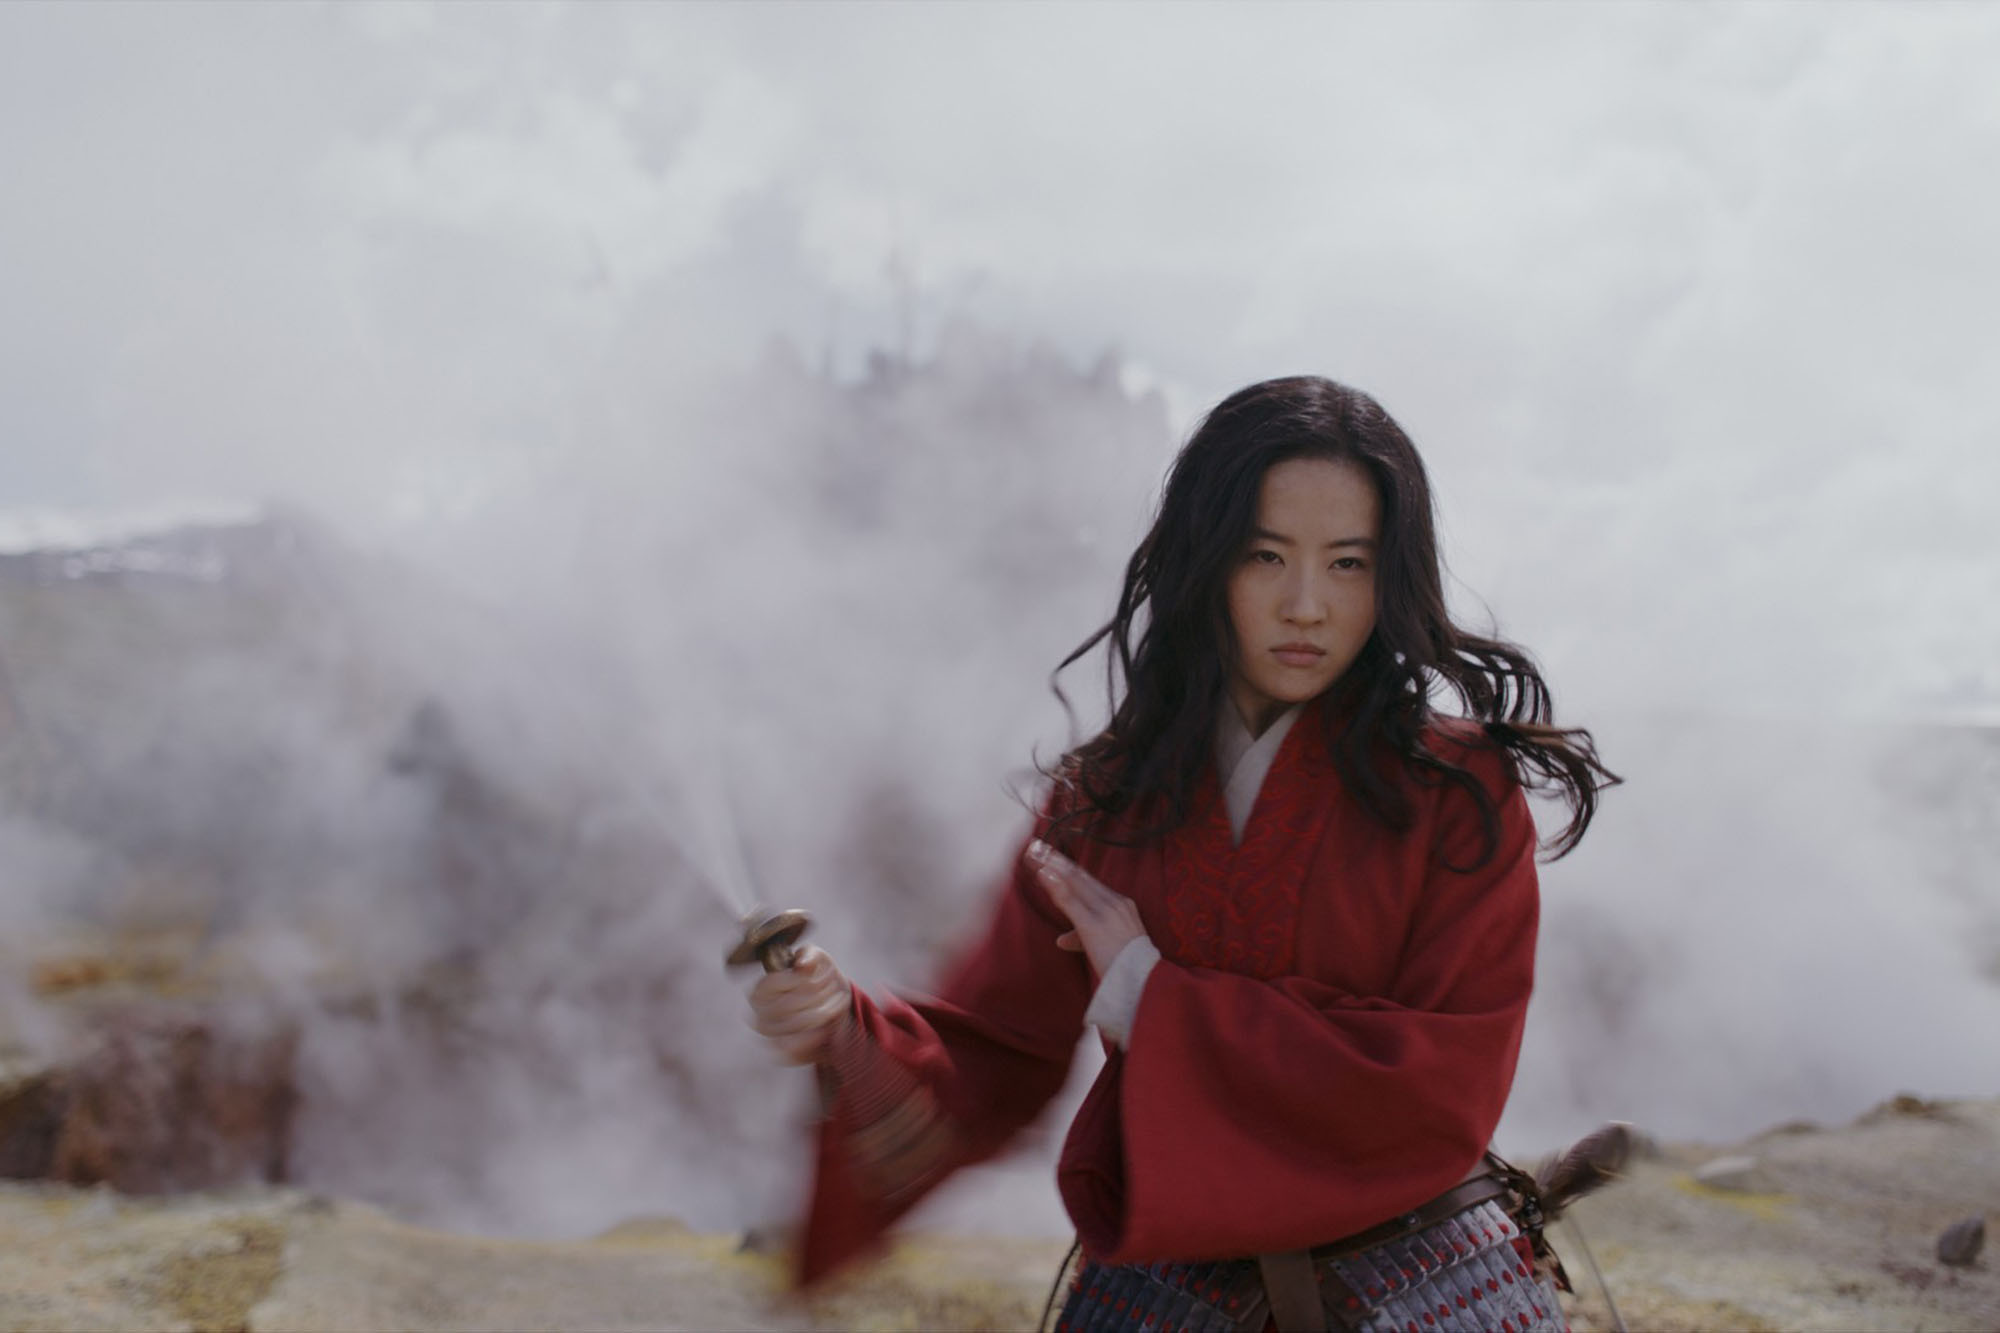 Summer blockbusters 'Tenet' and 'Mulan' likely delayed again